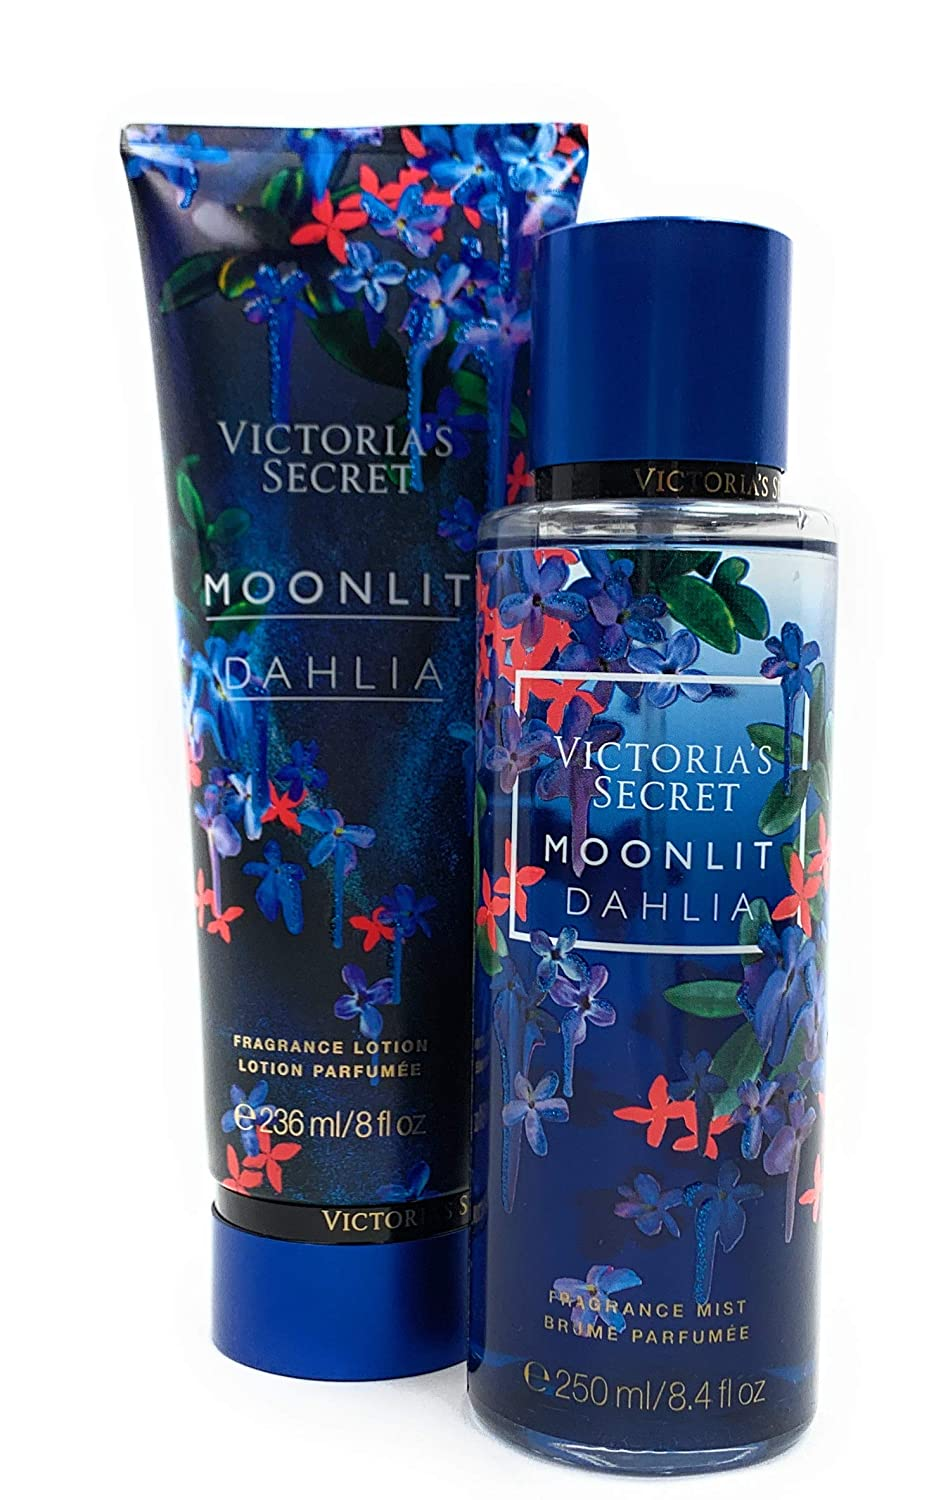 Victoria's Secret Moonlit Dahlia Fragrance Mist Body Spray and Lotion Limited Edition Set